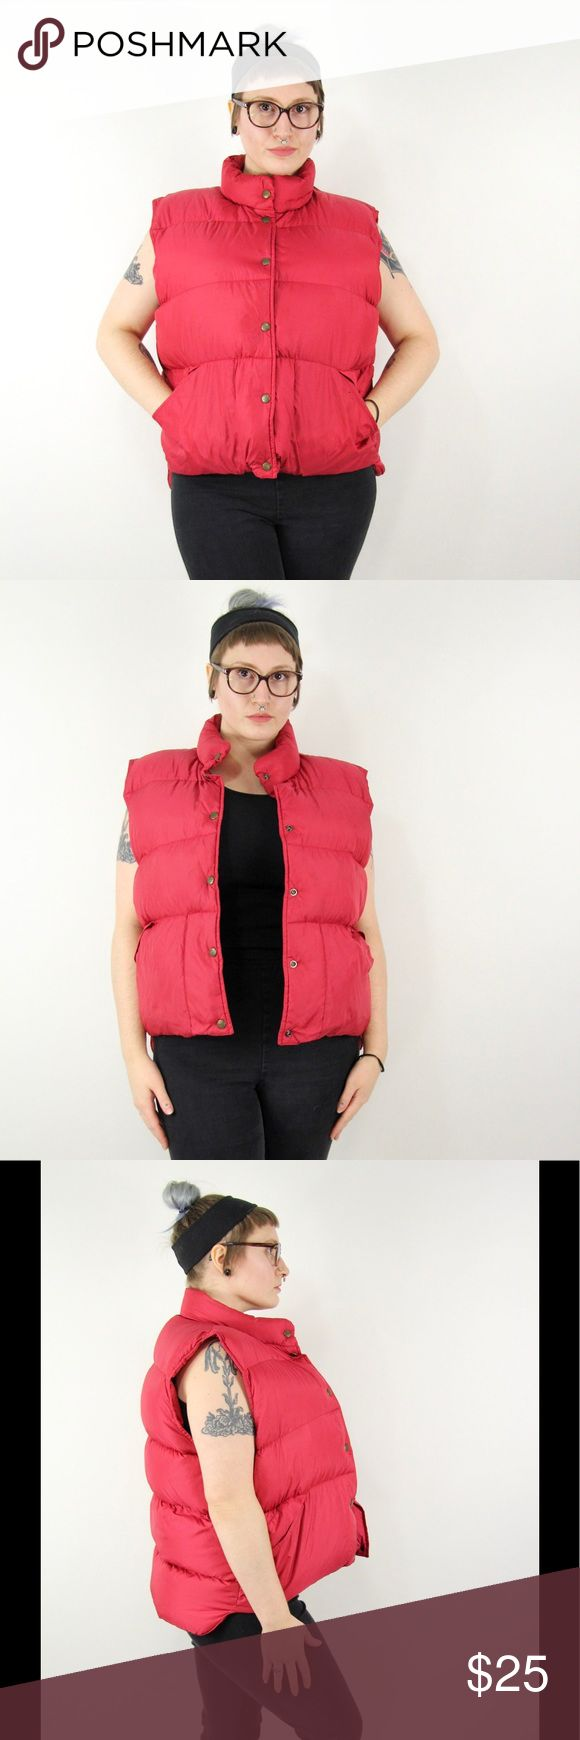 """90s Vintage LL Bean Down Puffer Vest Ski Jacket 90s vintage LL Bean red puffer vest with snap front closure and side slit pockets. No content label, but the exterior feels like a lightweight nylon and the insulation is a super fluffy down.   Size: n/a, fits like Women's Large, Men's Medium  Length: 25"""" back, 22"""" front  Chest: 50""""  Waist: 48""""   — Condition —  Small (1/4"""") tear on front left shoulder. Needs a stick or two to close it up. Otherwise good condition. L.L. Bean Jackets & Coats…"""